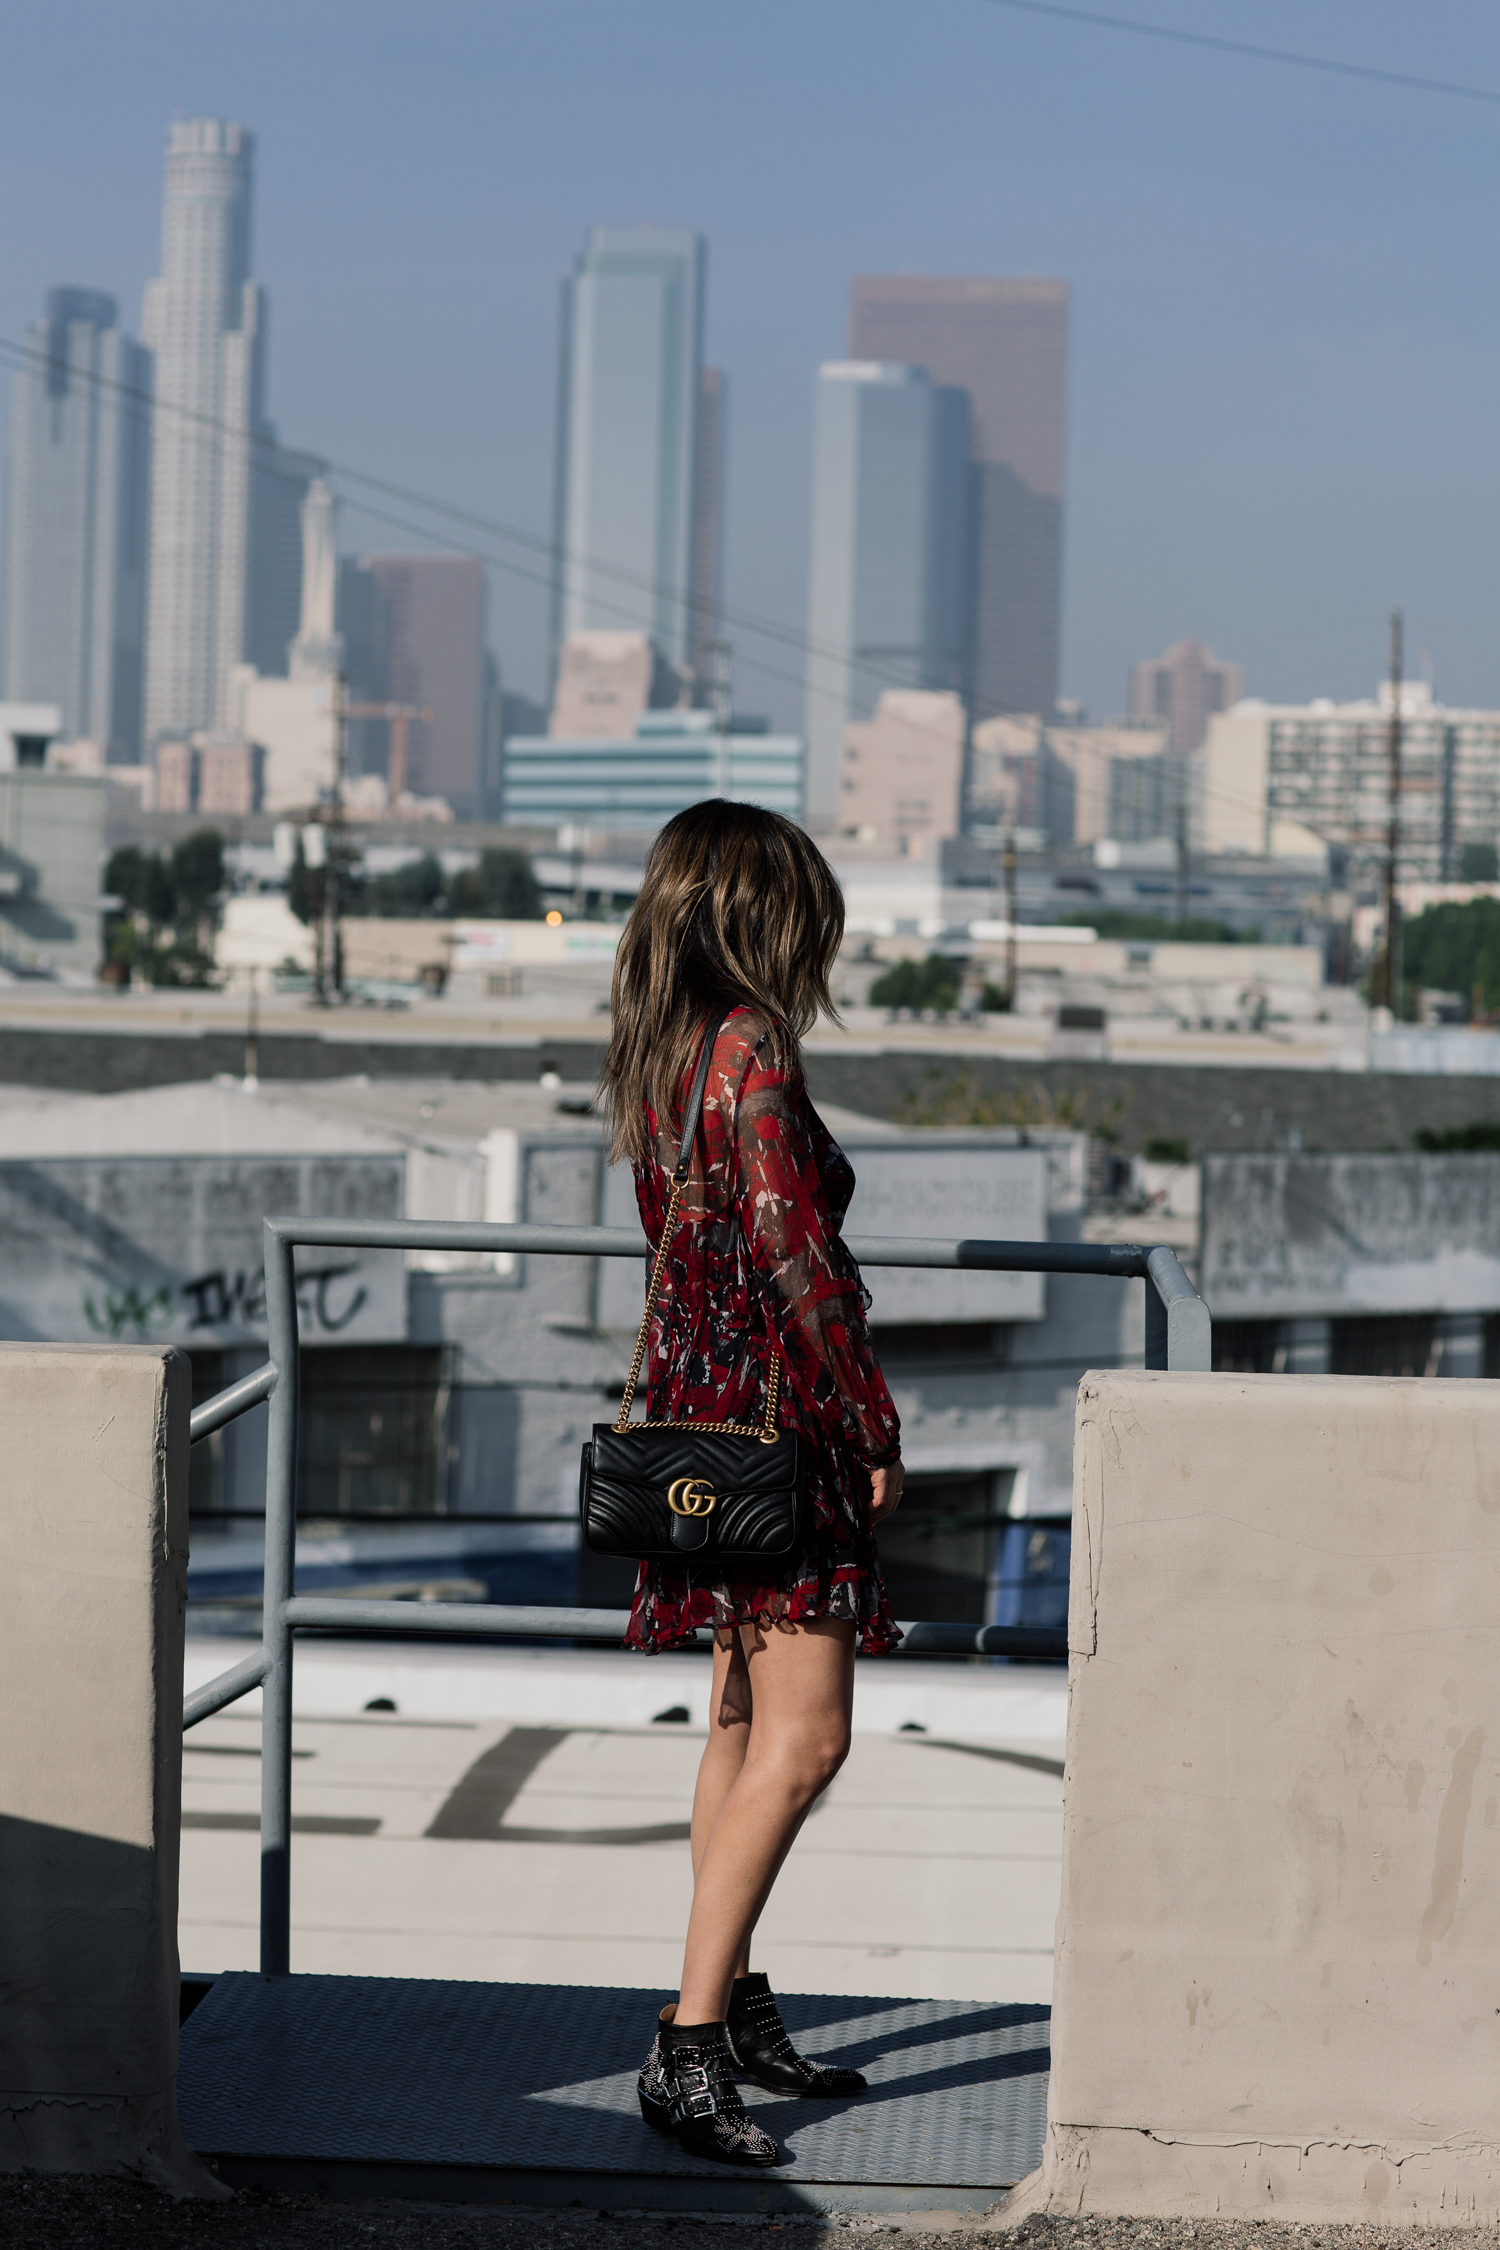 Back detail of red dress worn by brunette woman, blogger Sara Azani of Style MBA is photographed outside in front of a cityscape during the daytime wearing an IRO little red dress, Gucci GG Marmont quilted leather shoulder bag with gold hardware, Chloé Susanna Stud Buckle Booties.